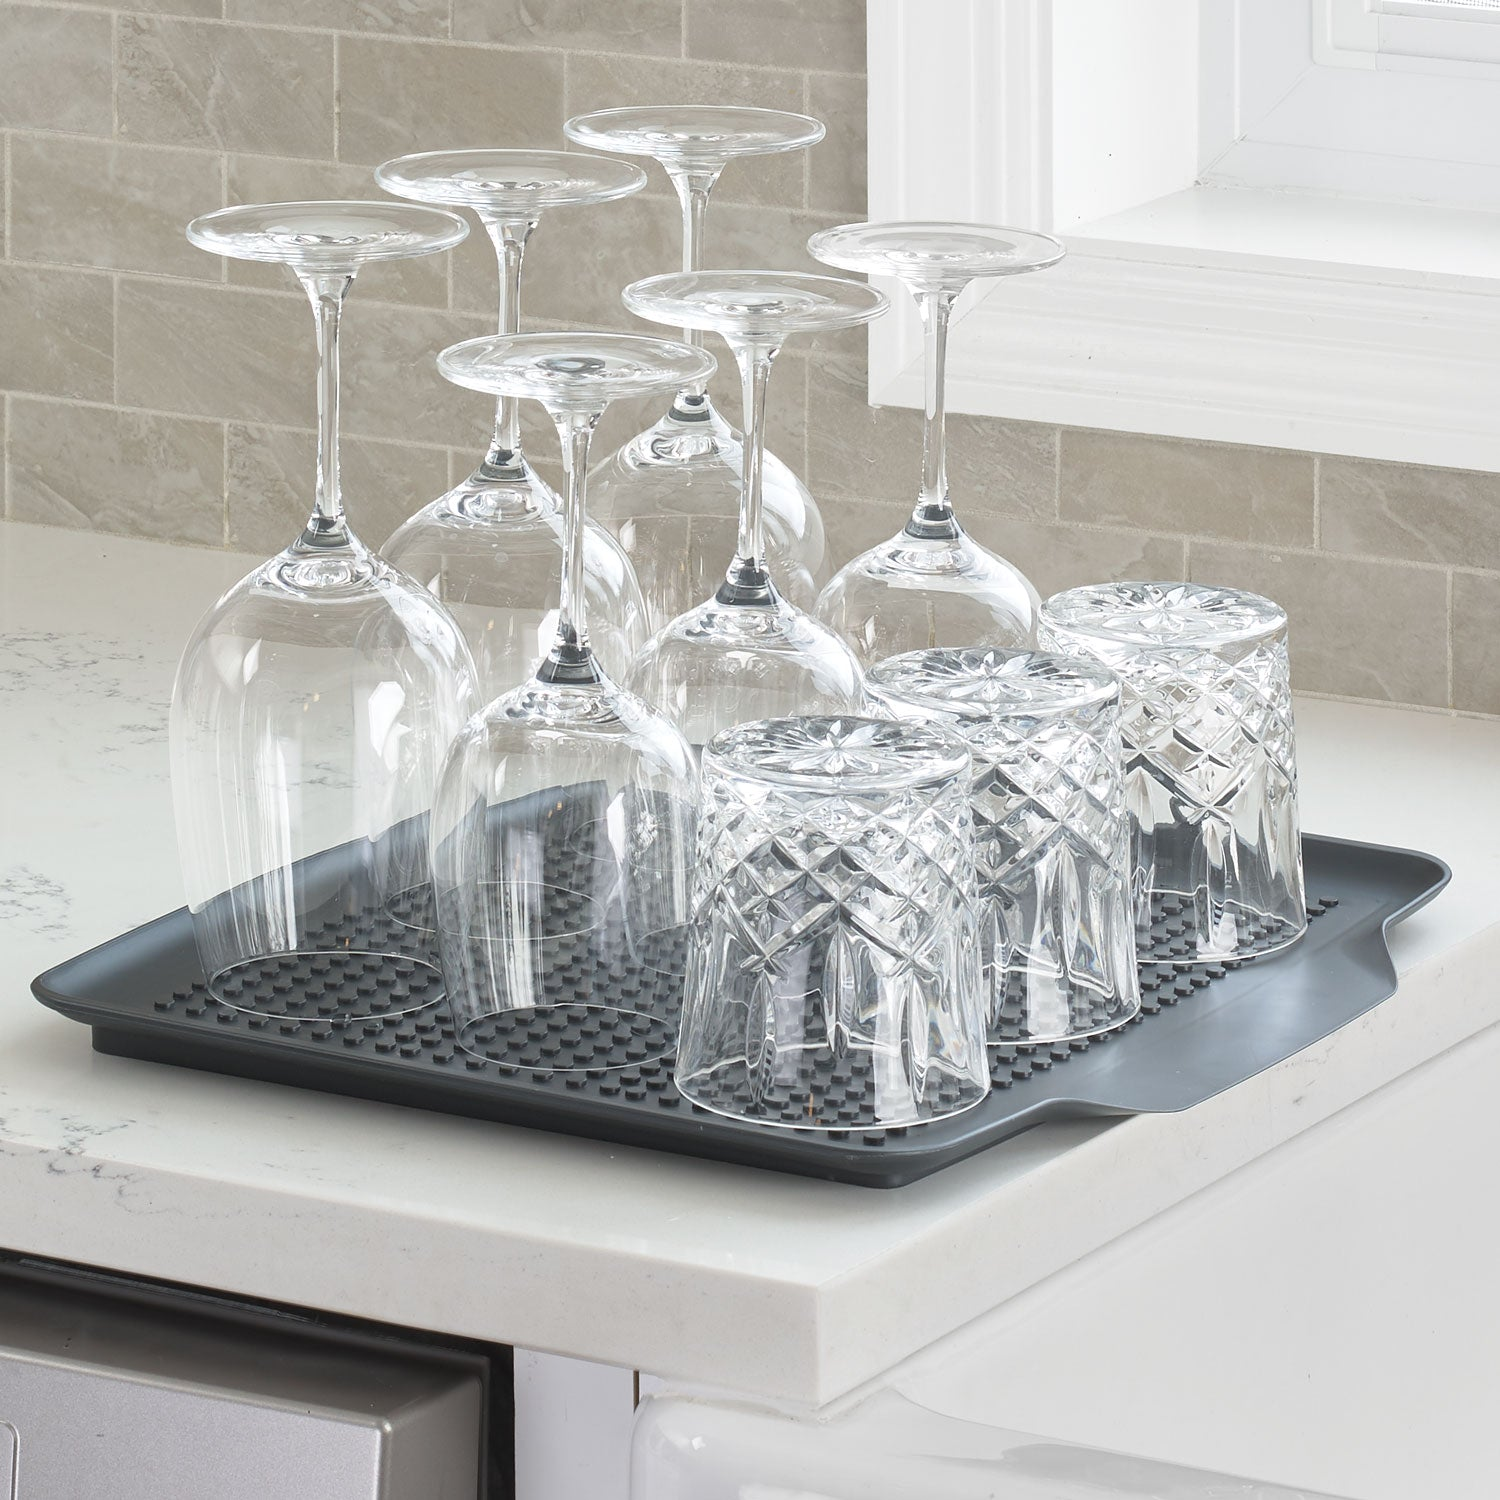 4-Piece Aluminum Advantage Dish Rack